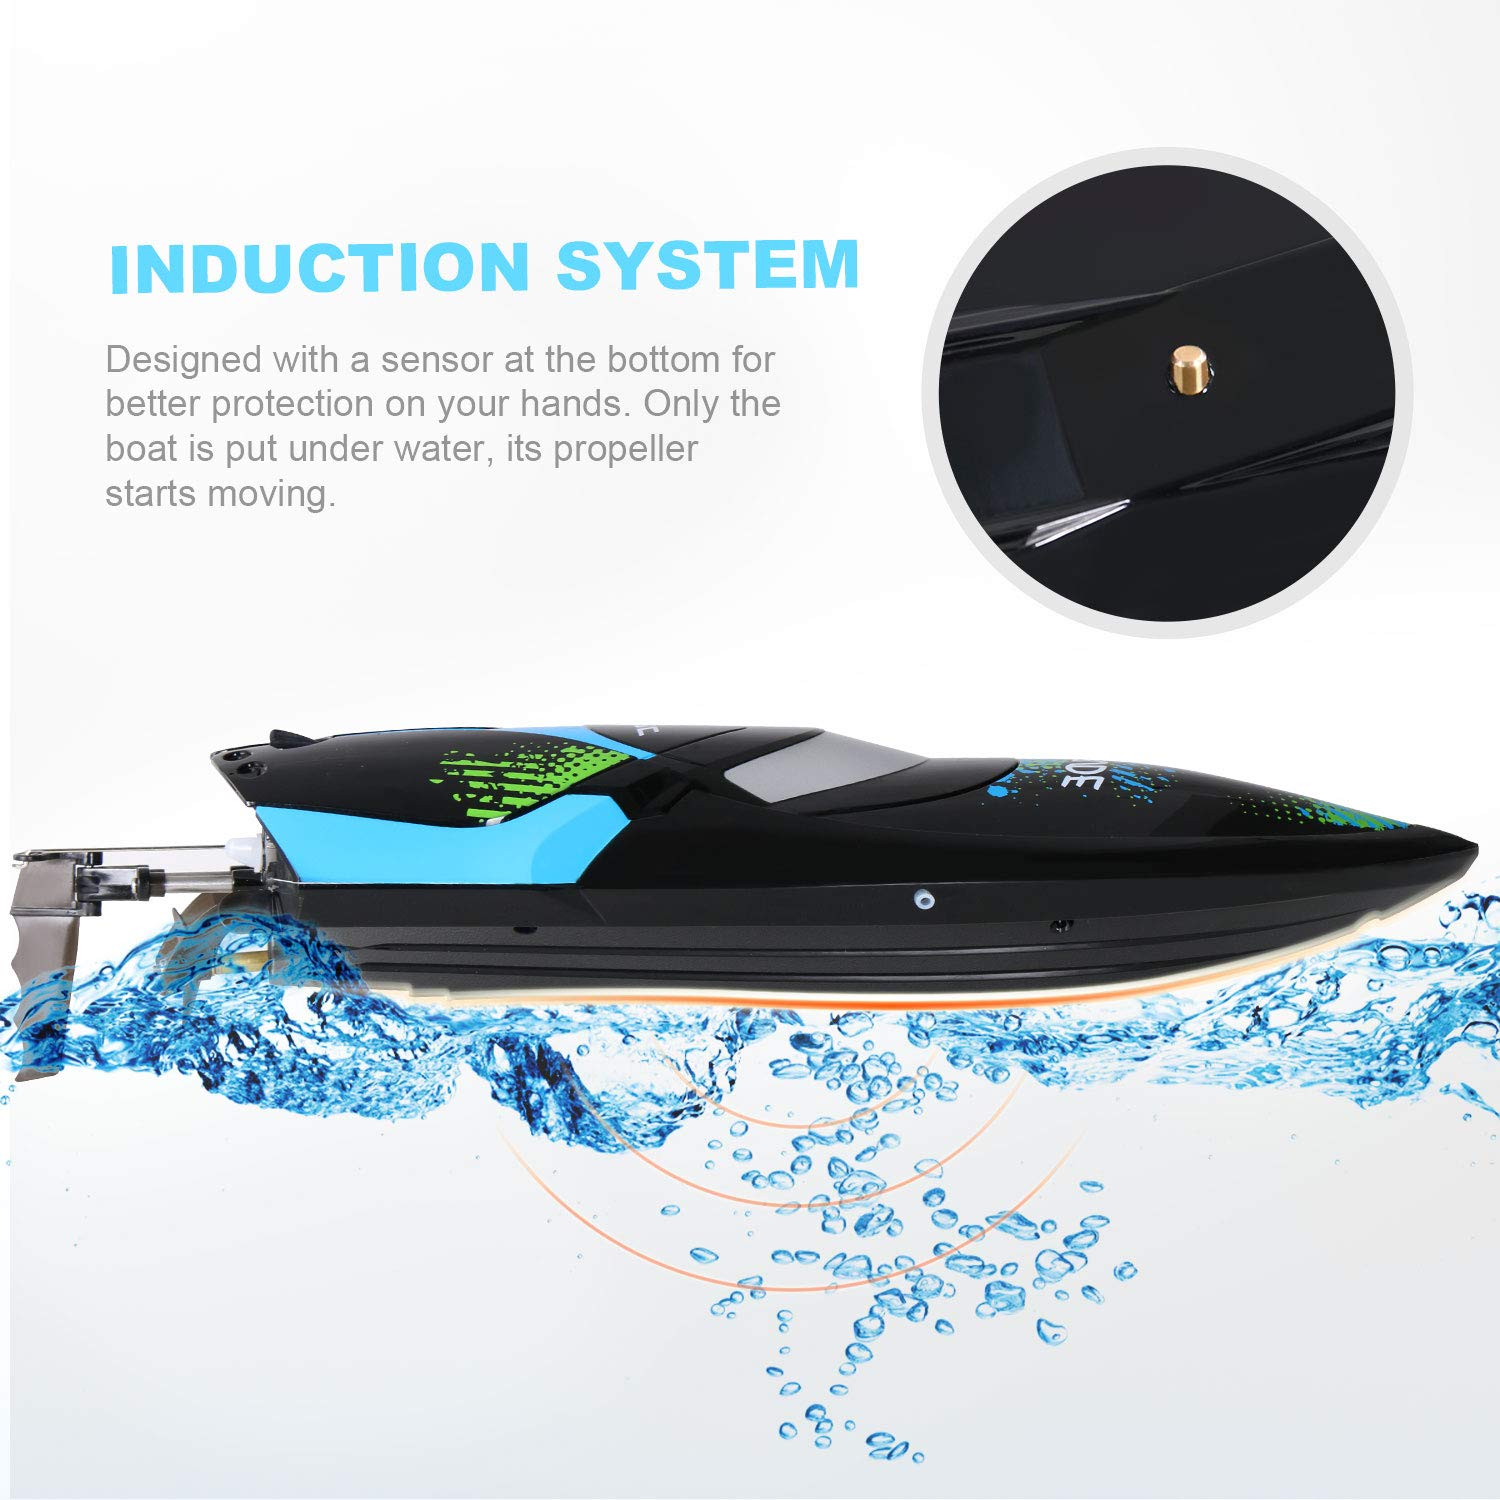 ANTAPRCIS 25km/h RC Boat, 2.4GHz 180° Flip Remote Control Race Boat for Pool Lake Boy Adult, Black by ANTAPRCIS (Image #4)